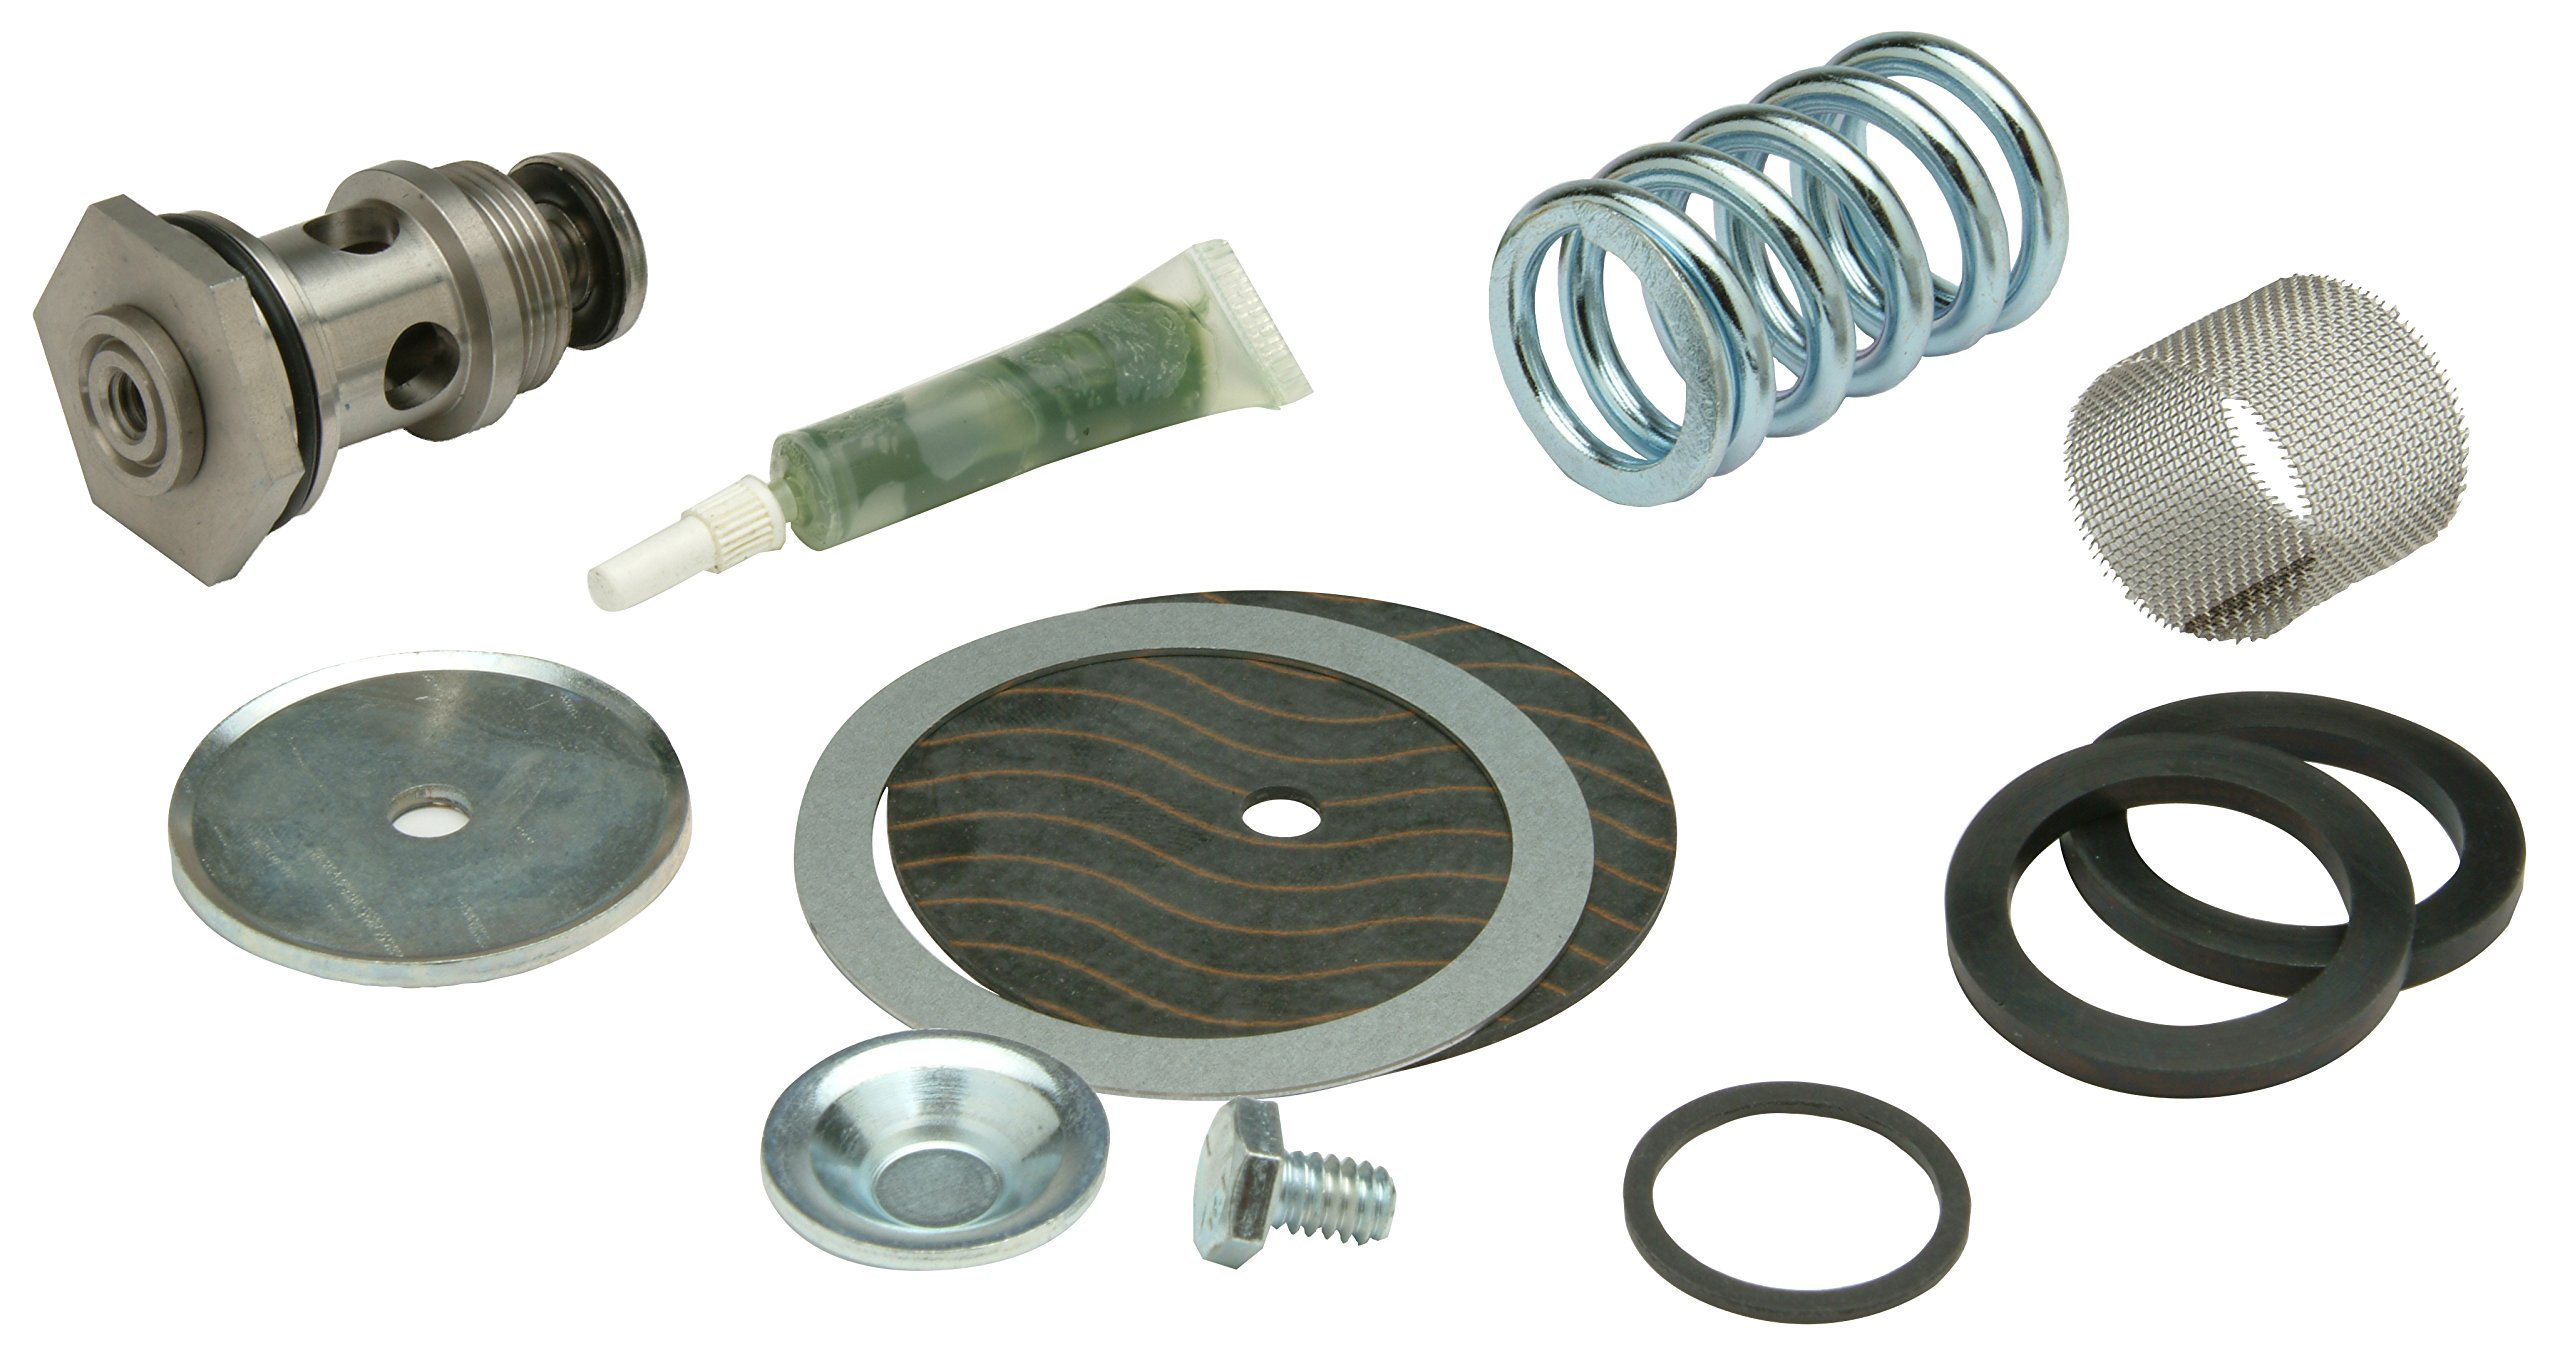 Zurn RK34-70XL Wilkins Repair Kit for 0.75'' Models 70, 70DU, and 70XL and for 3/4'' Pressure Reducing Valve (PRV) 70 Series